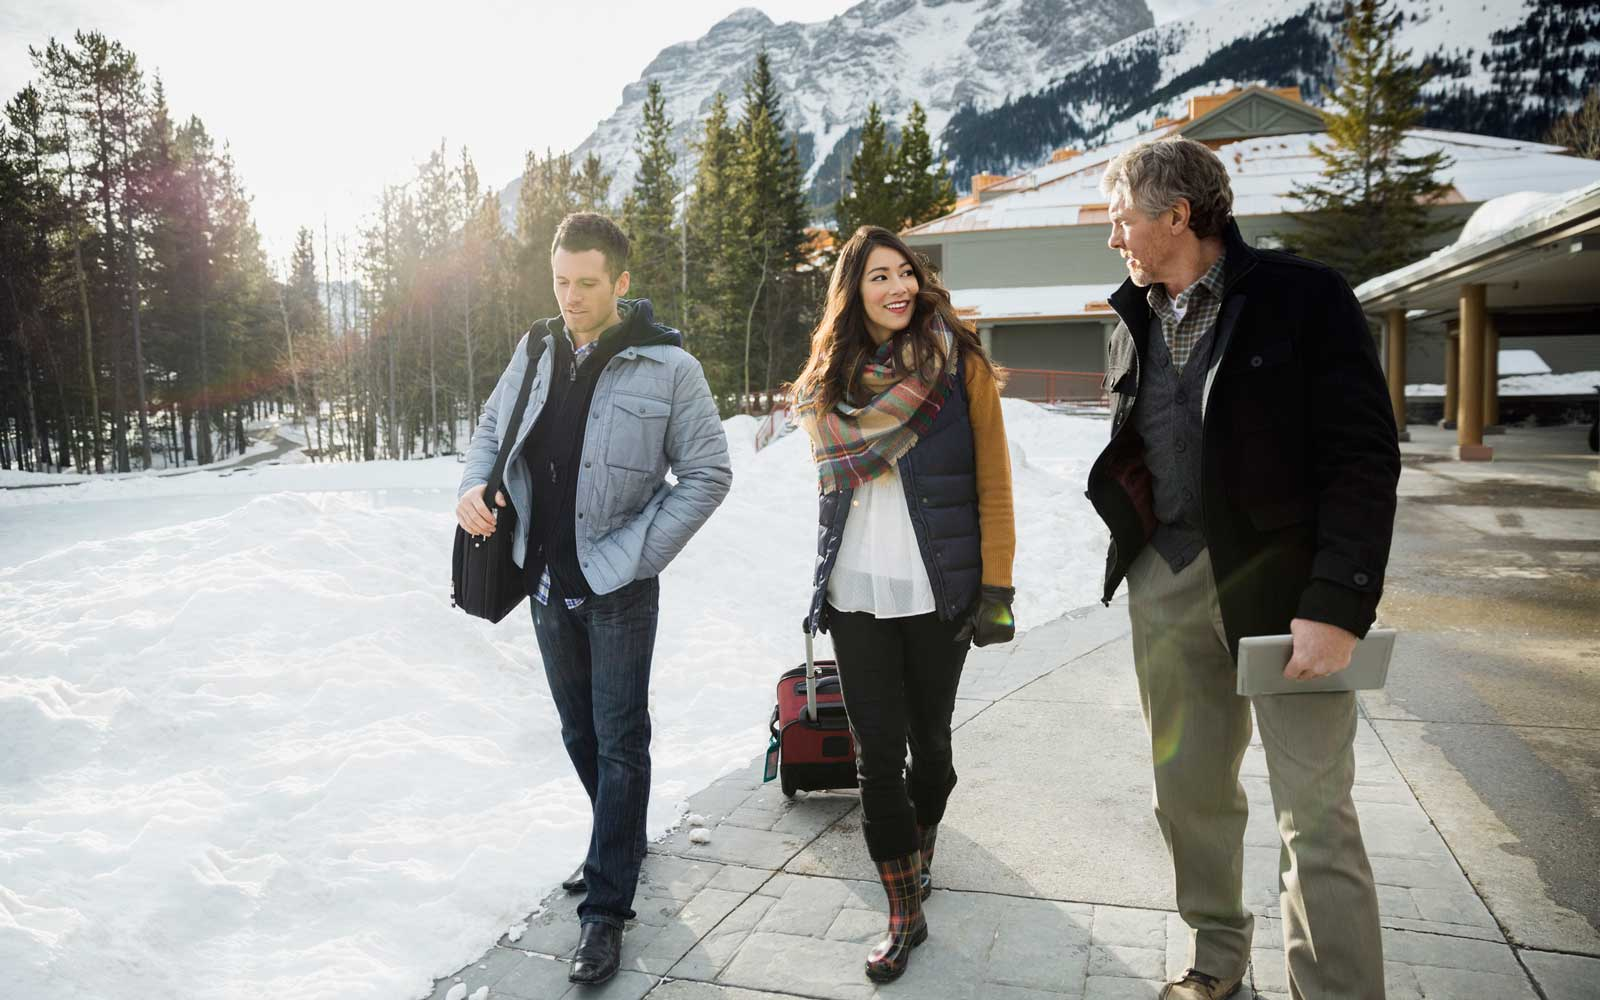 Winter Travel with thin layers